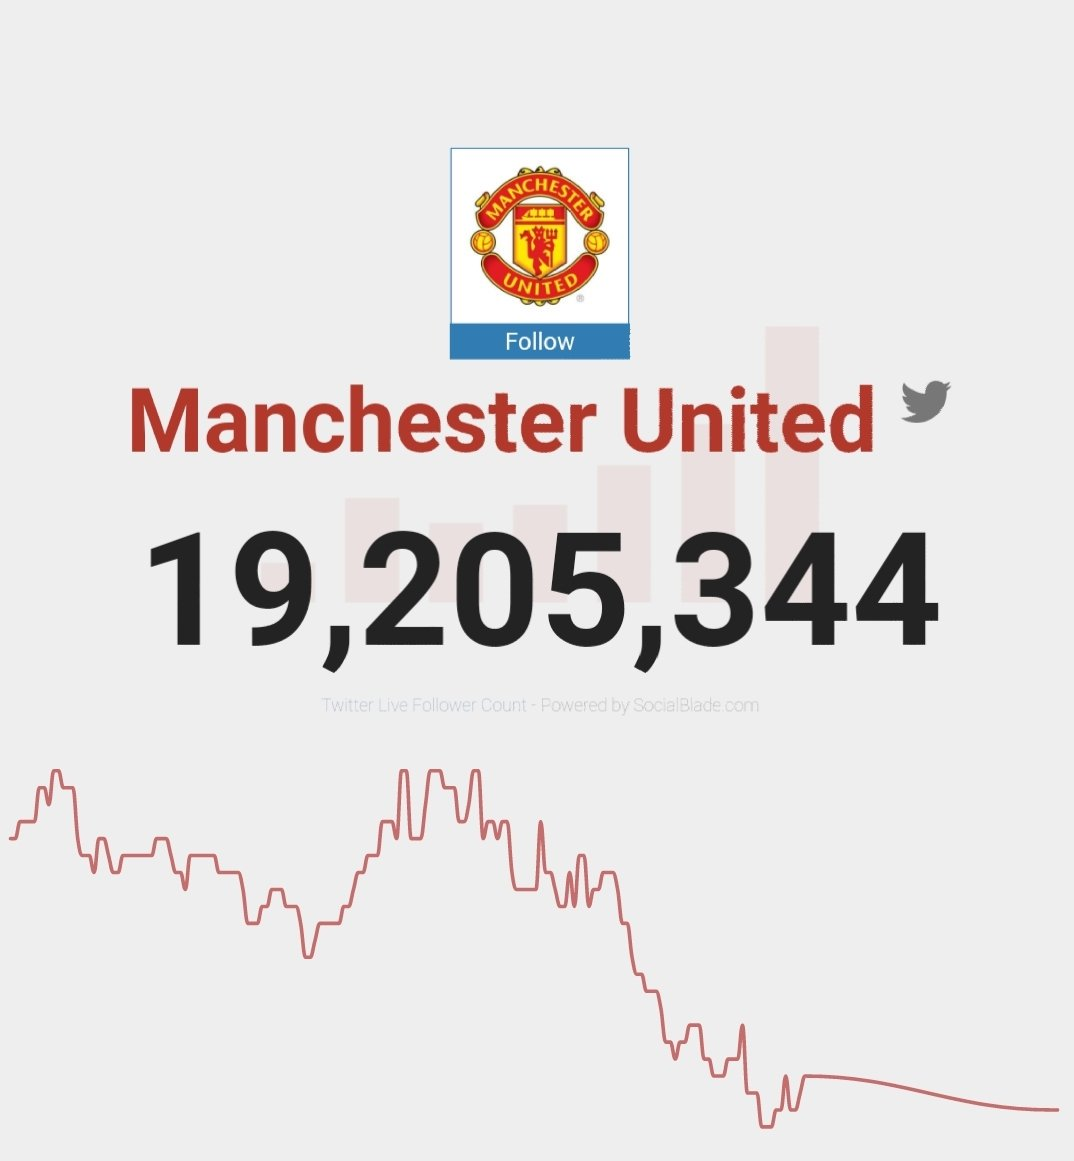 Getting lower... at what number do you think something is done? Our guess 18 million.... #unfollowmanunited